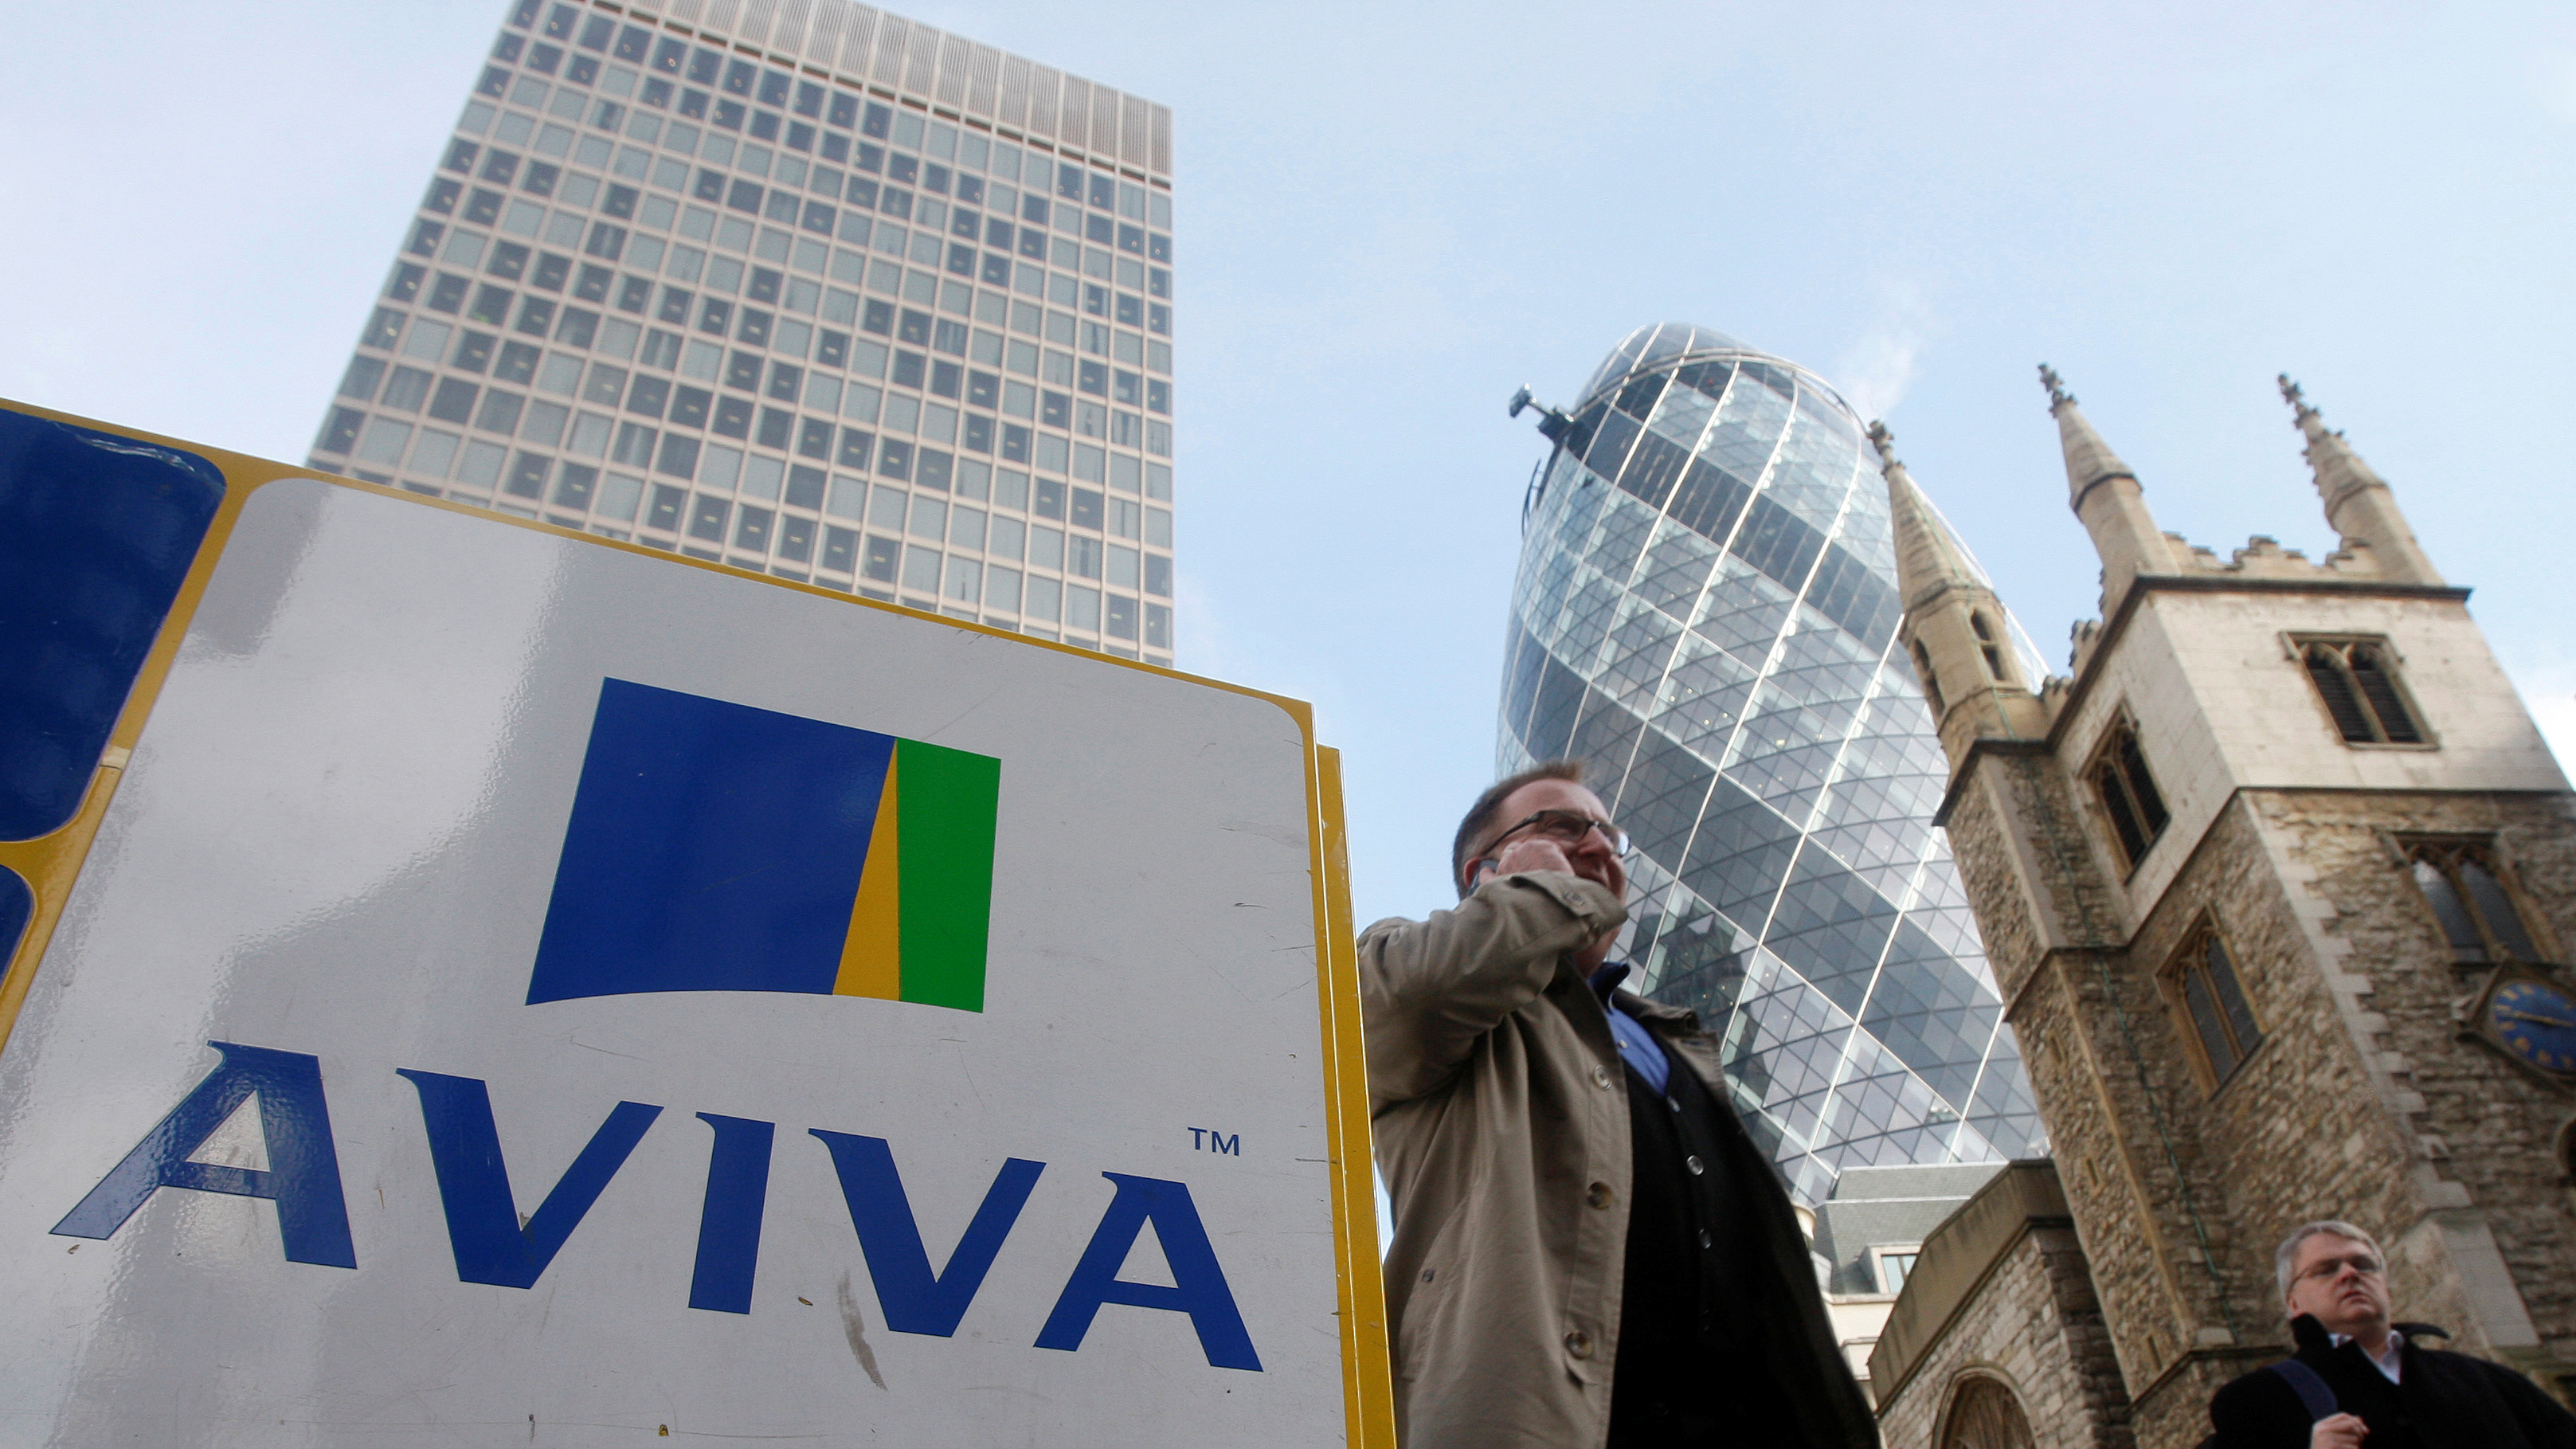 Aviva is unlikely to be the only company to offer such a deal.